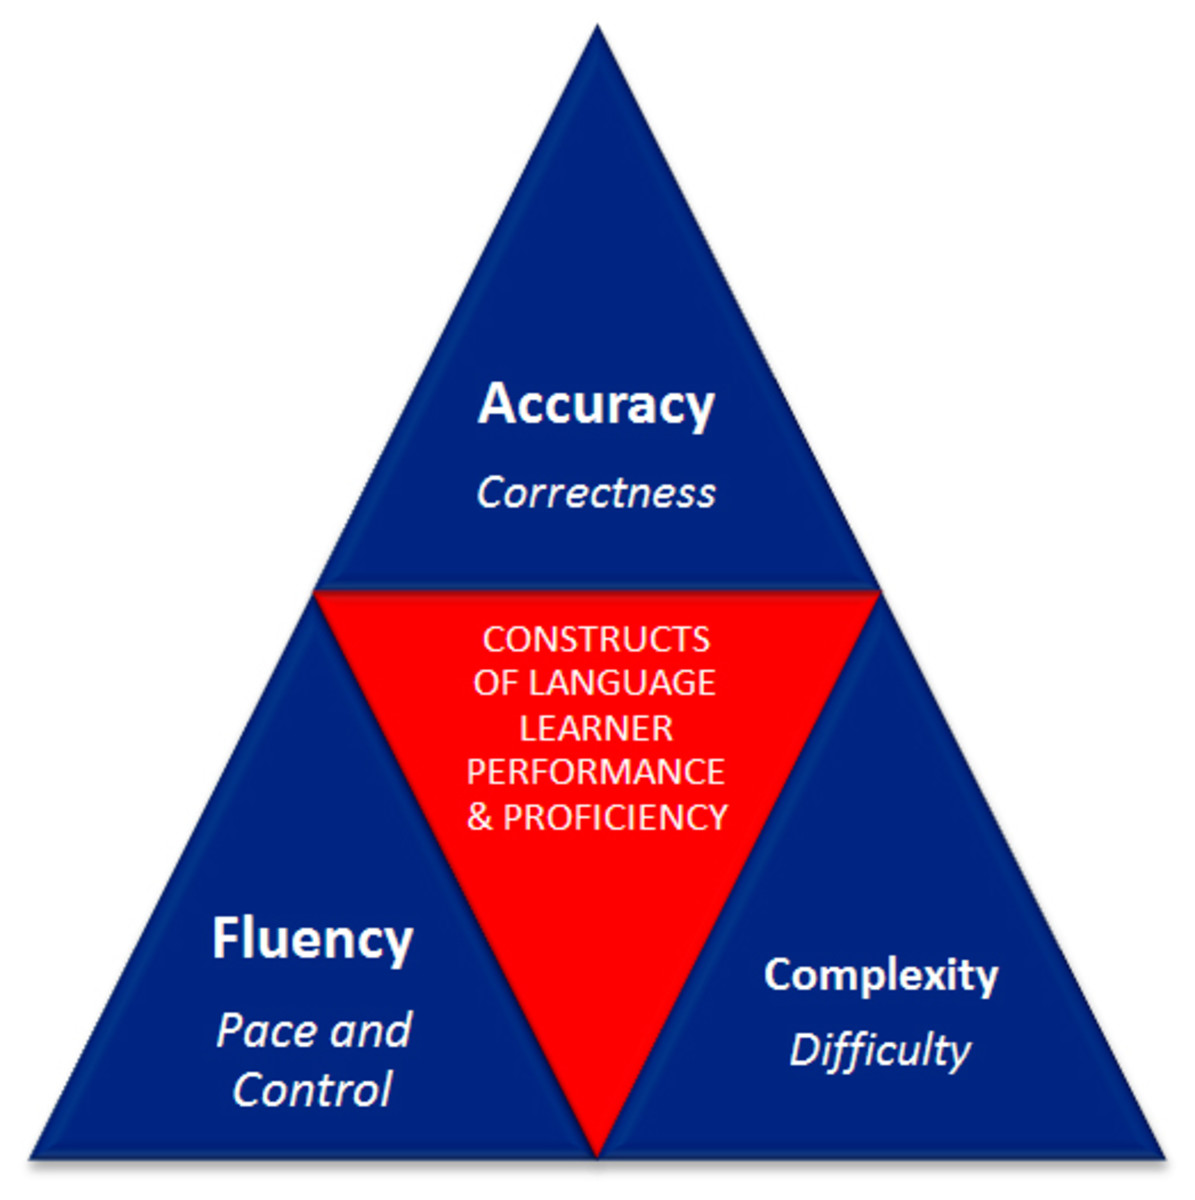 Complexity, Accuracy, Fluency (CAF): The constructs of language learner performance and proficiency